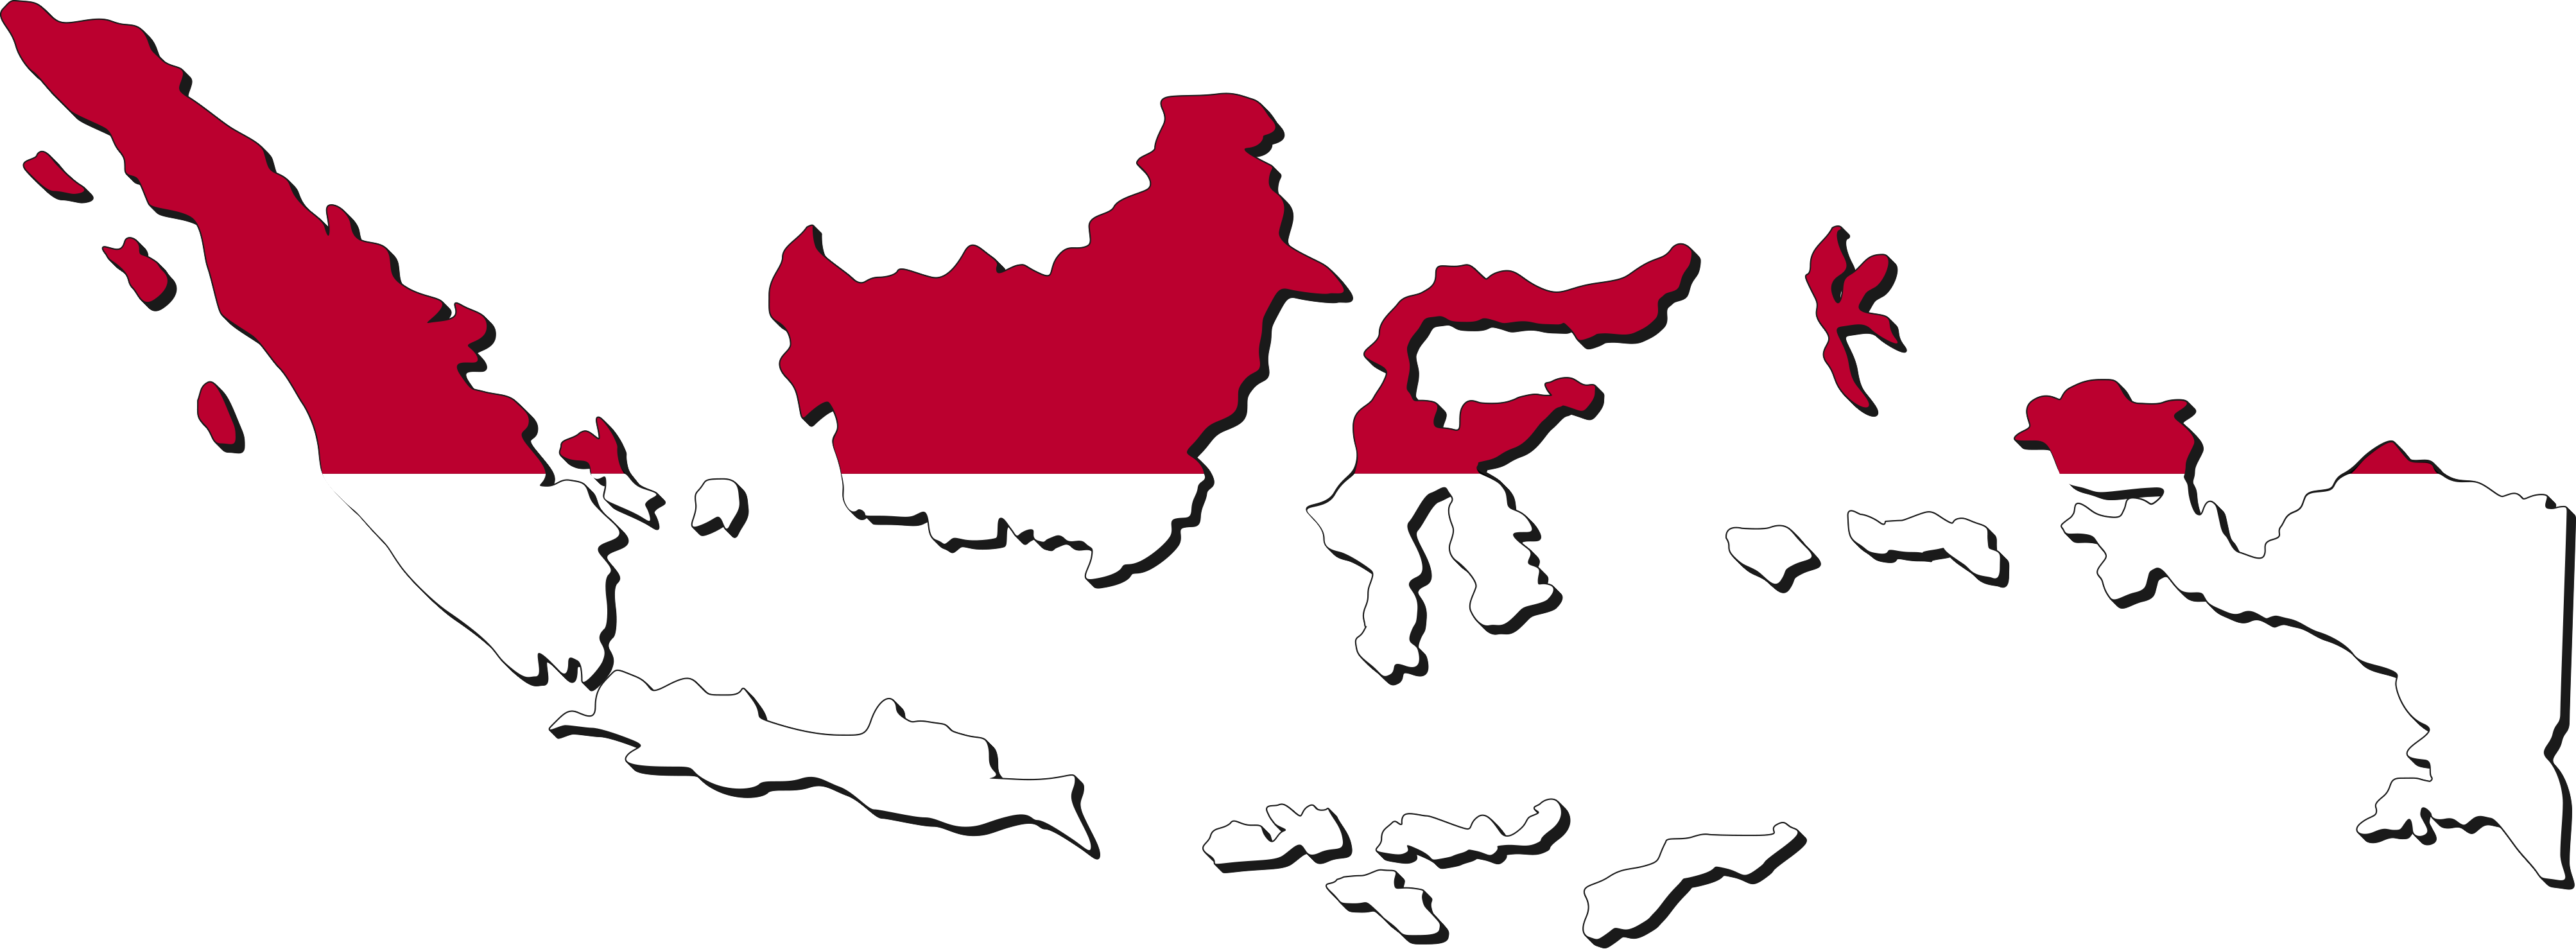 Indonesia map clip art banner library library Indonesia Map with cities - blank outline map of Indonesia- banner library library